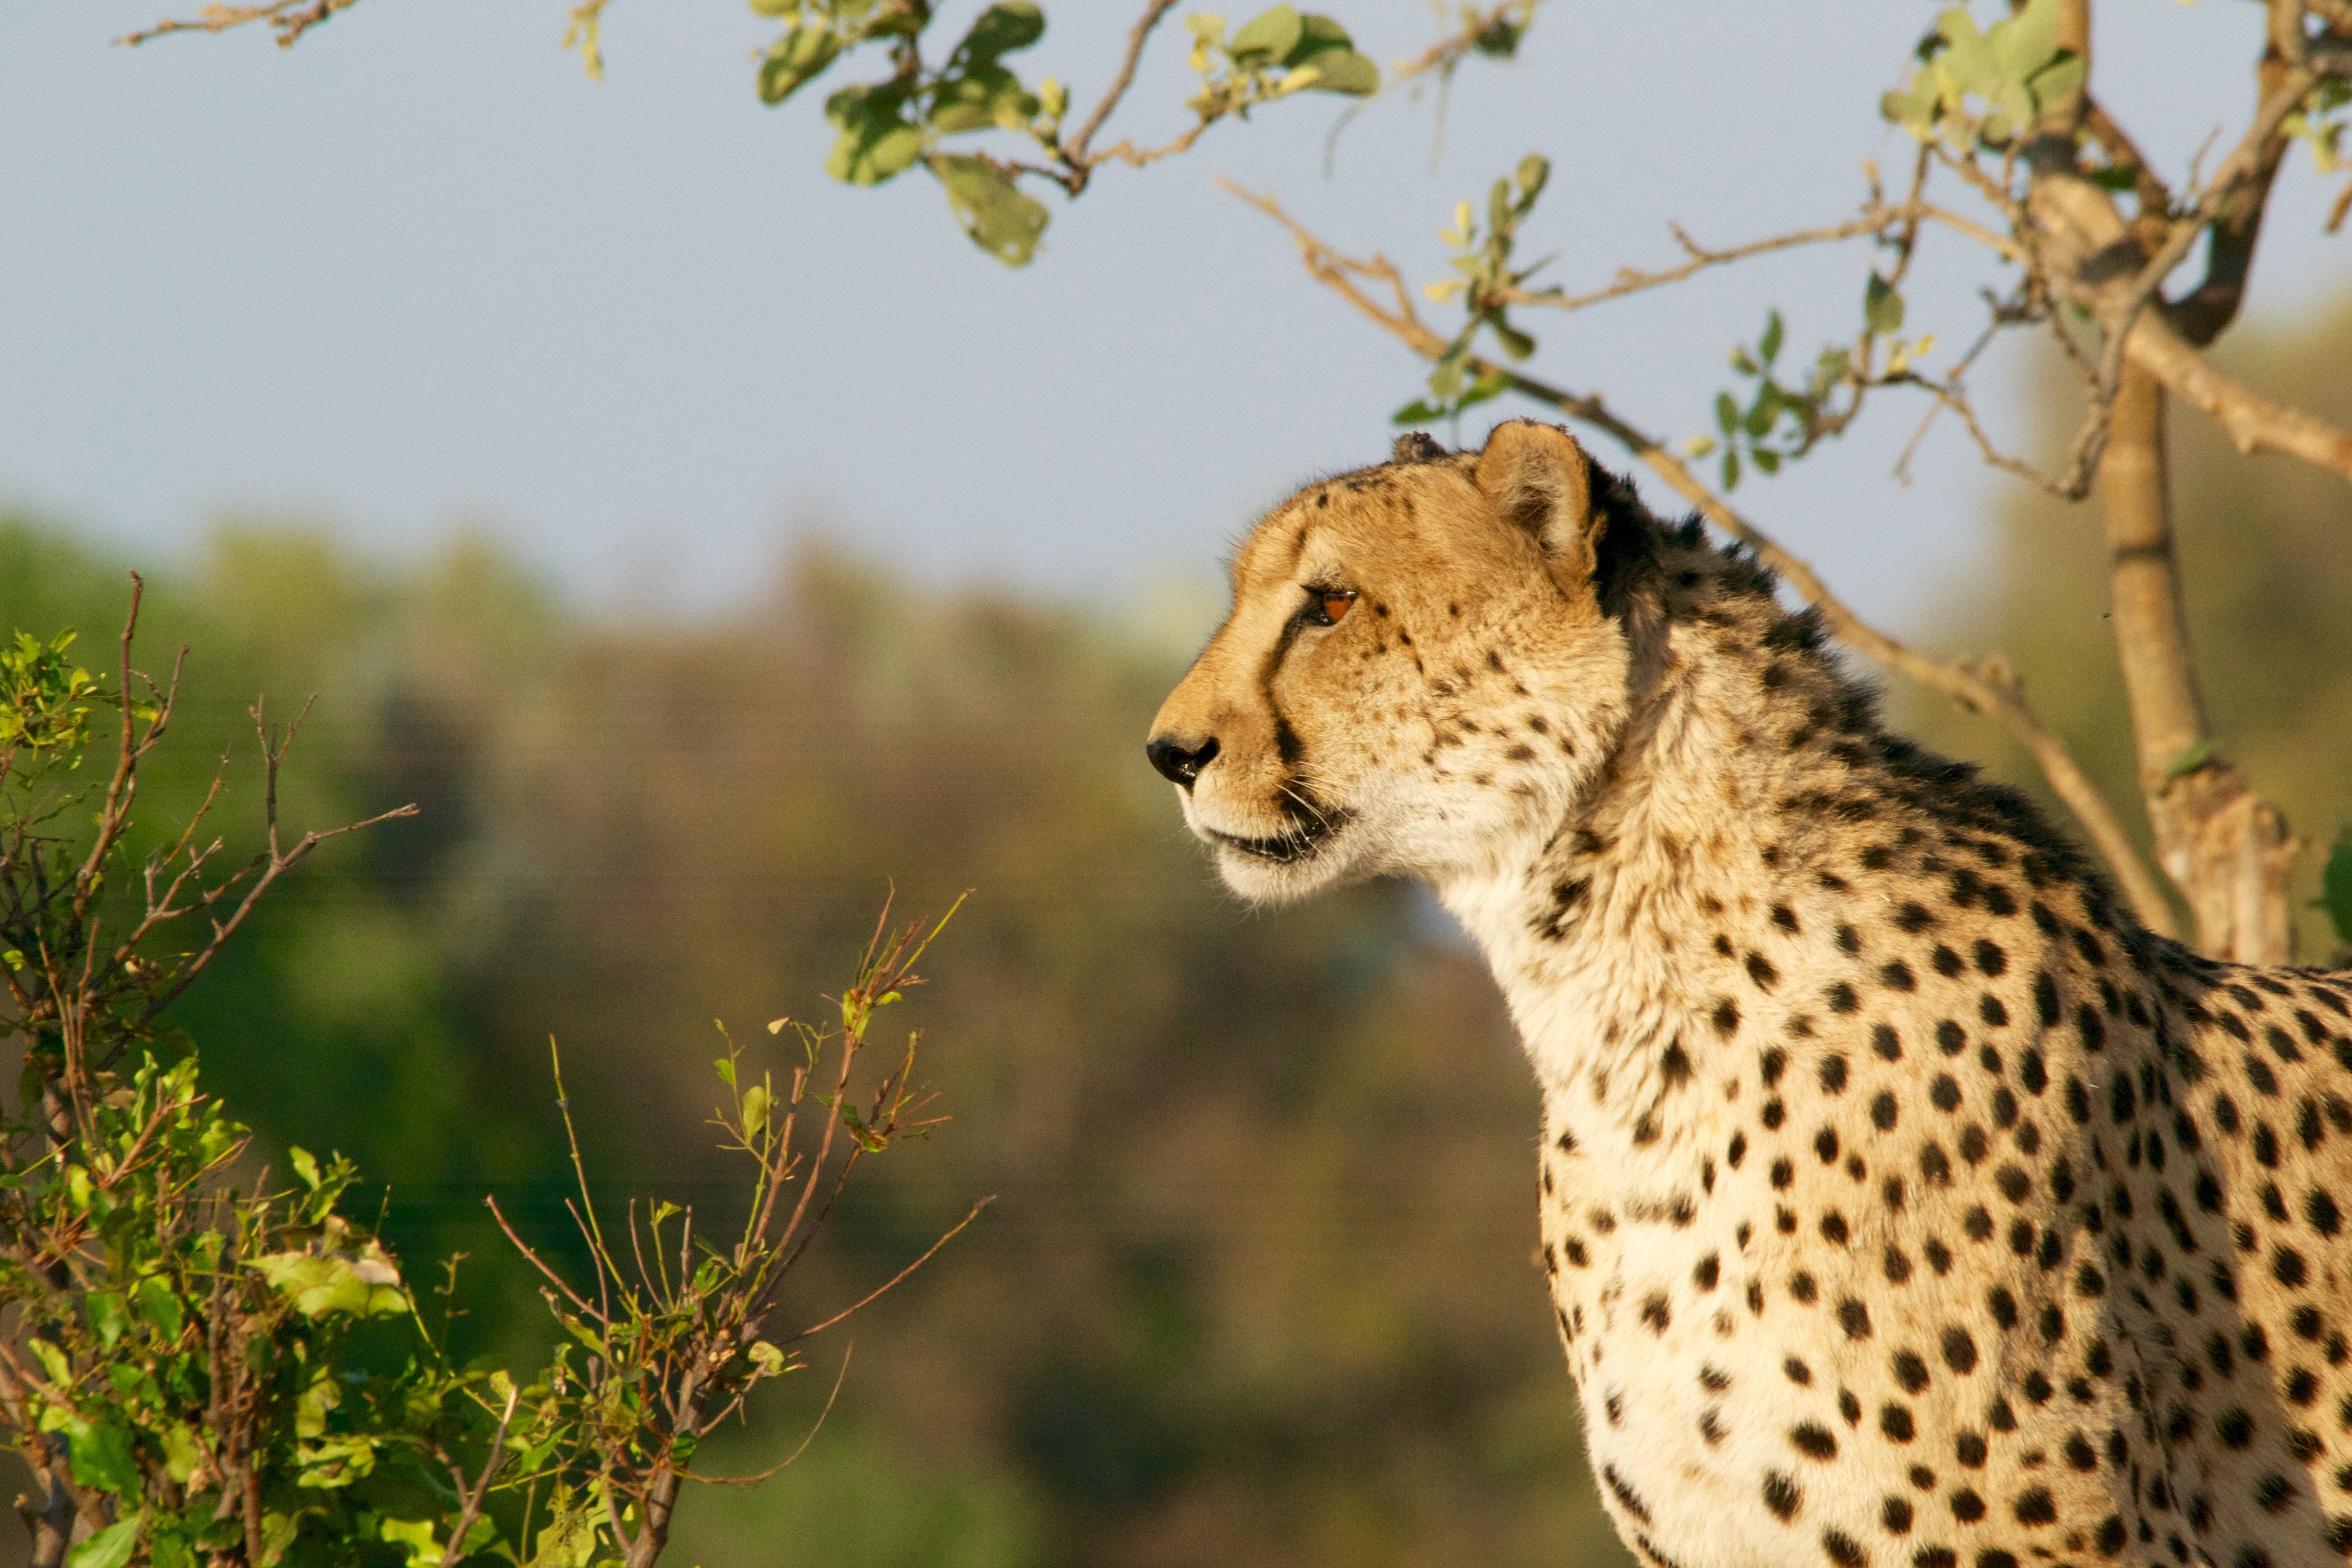 A cheetah looking into the distance among green bushes